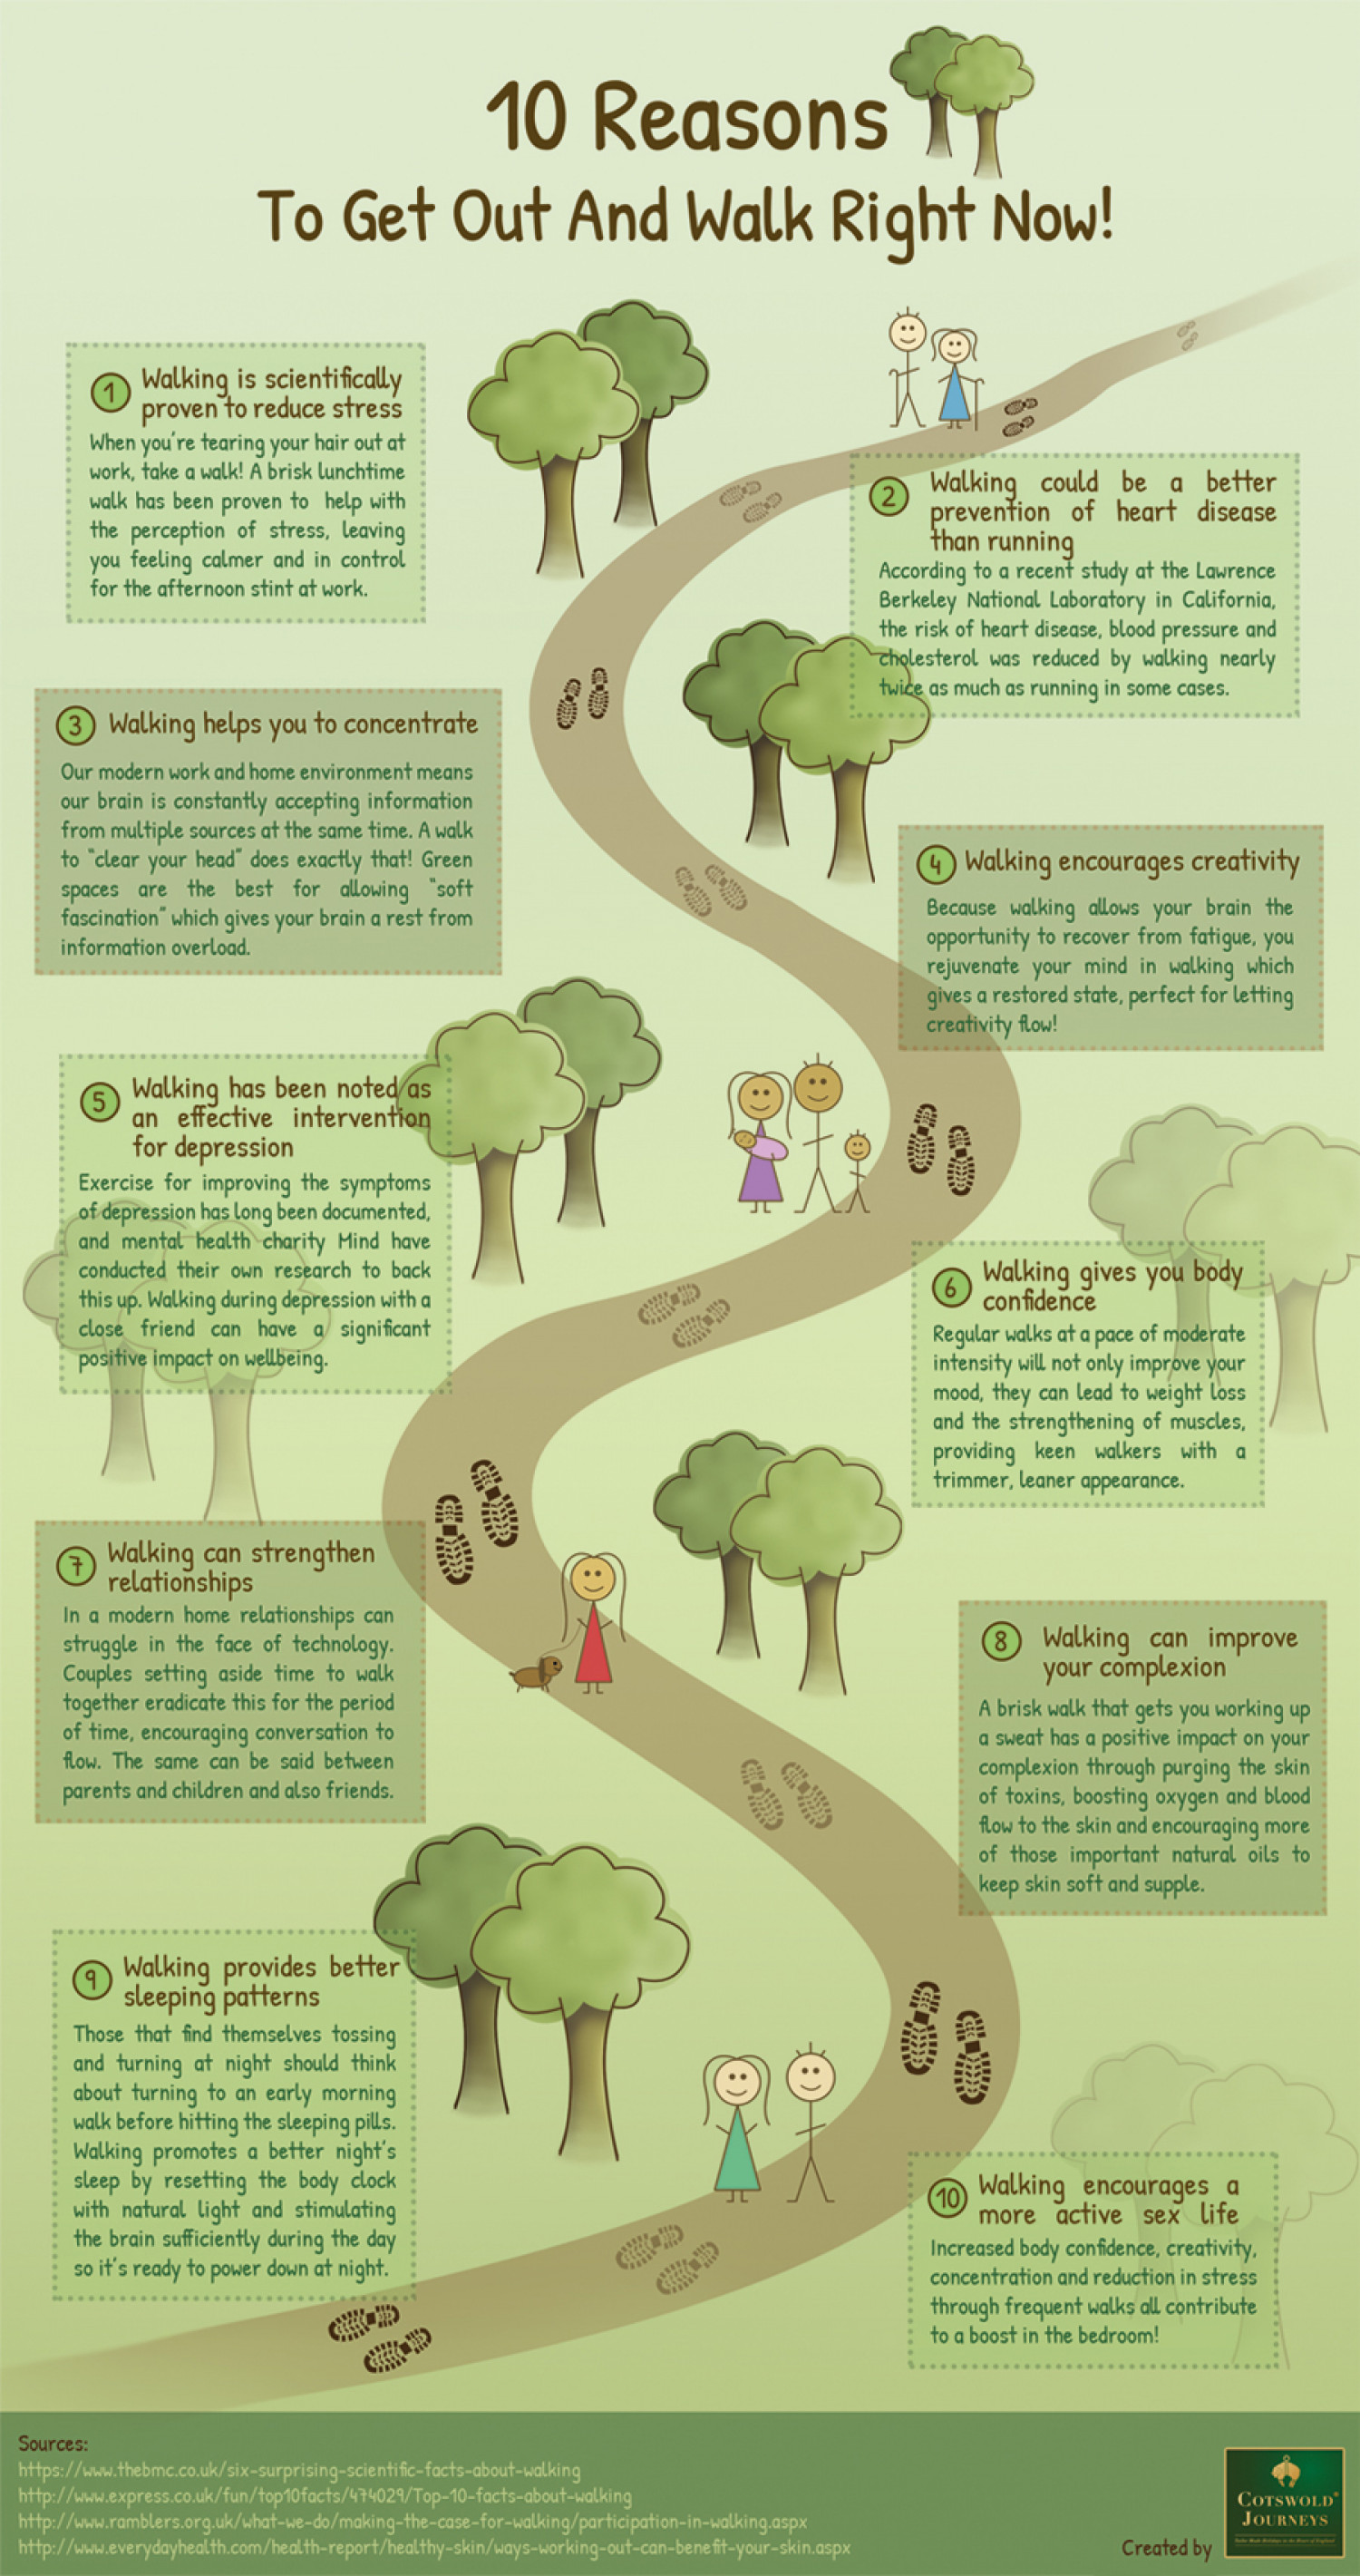 10 Reasons to Get Out and Walk Right Now!  Infographic